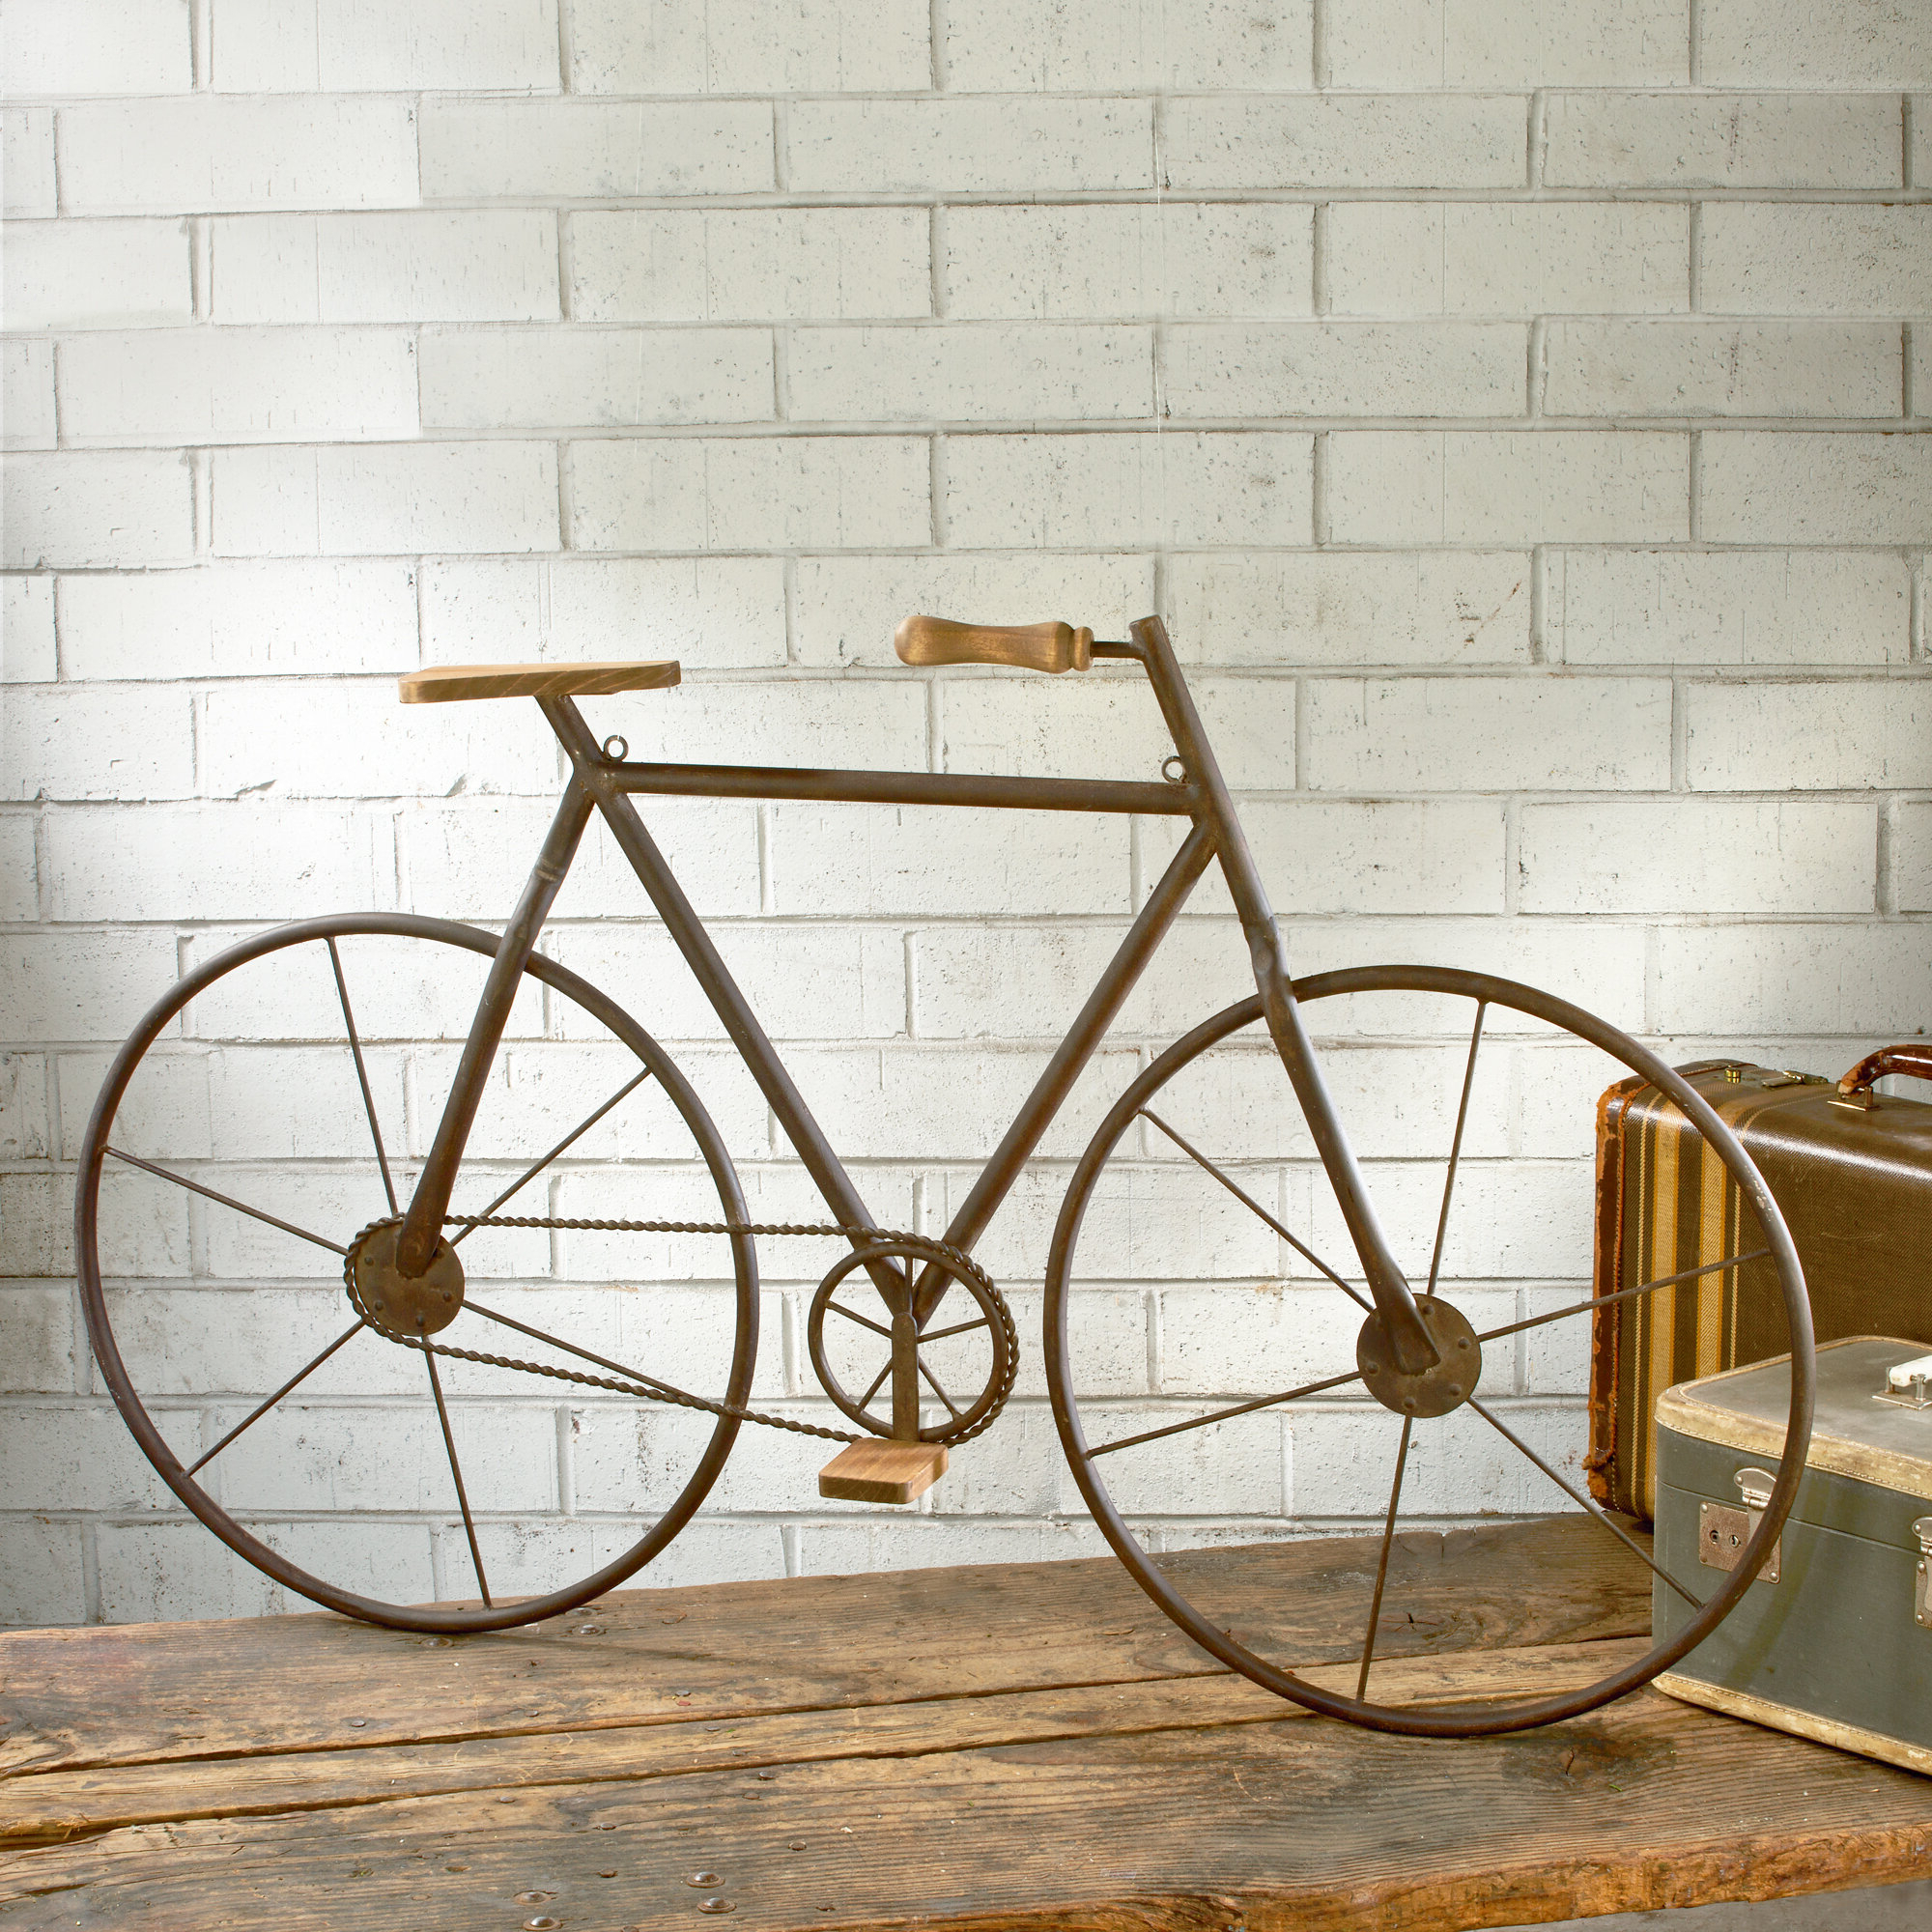 2020 Tripar Bicycle Wall Décor & Reviews (Gallery 14 of 20)